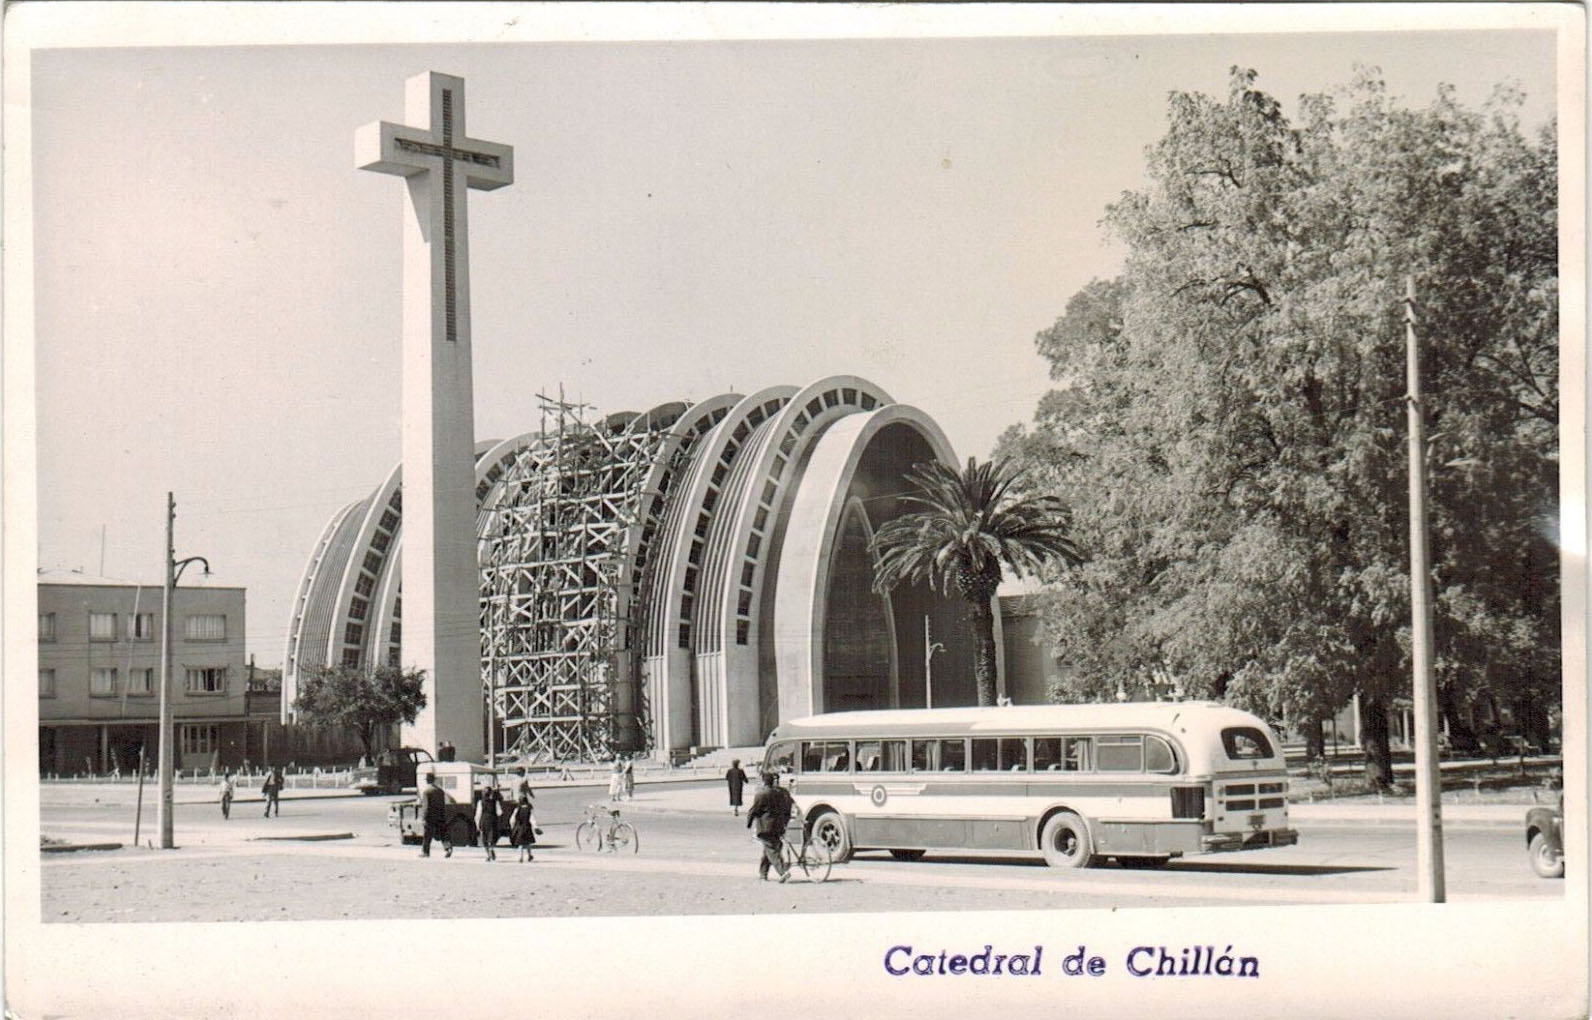 Enterreno - Fotos históricas de chile - fotos antiguas de Chile - Catedral de Chillán en 1960